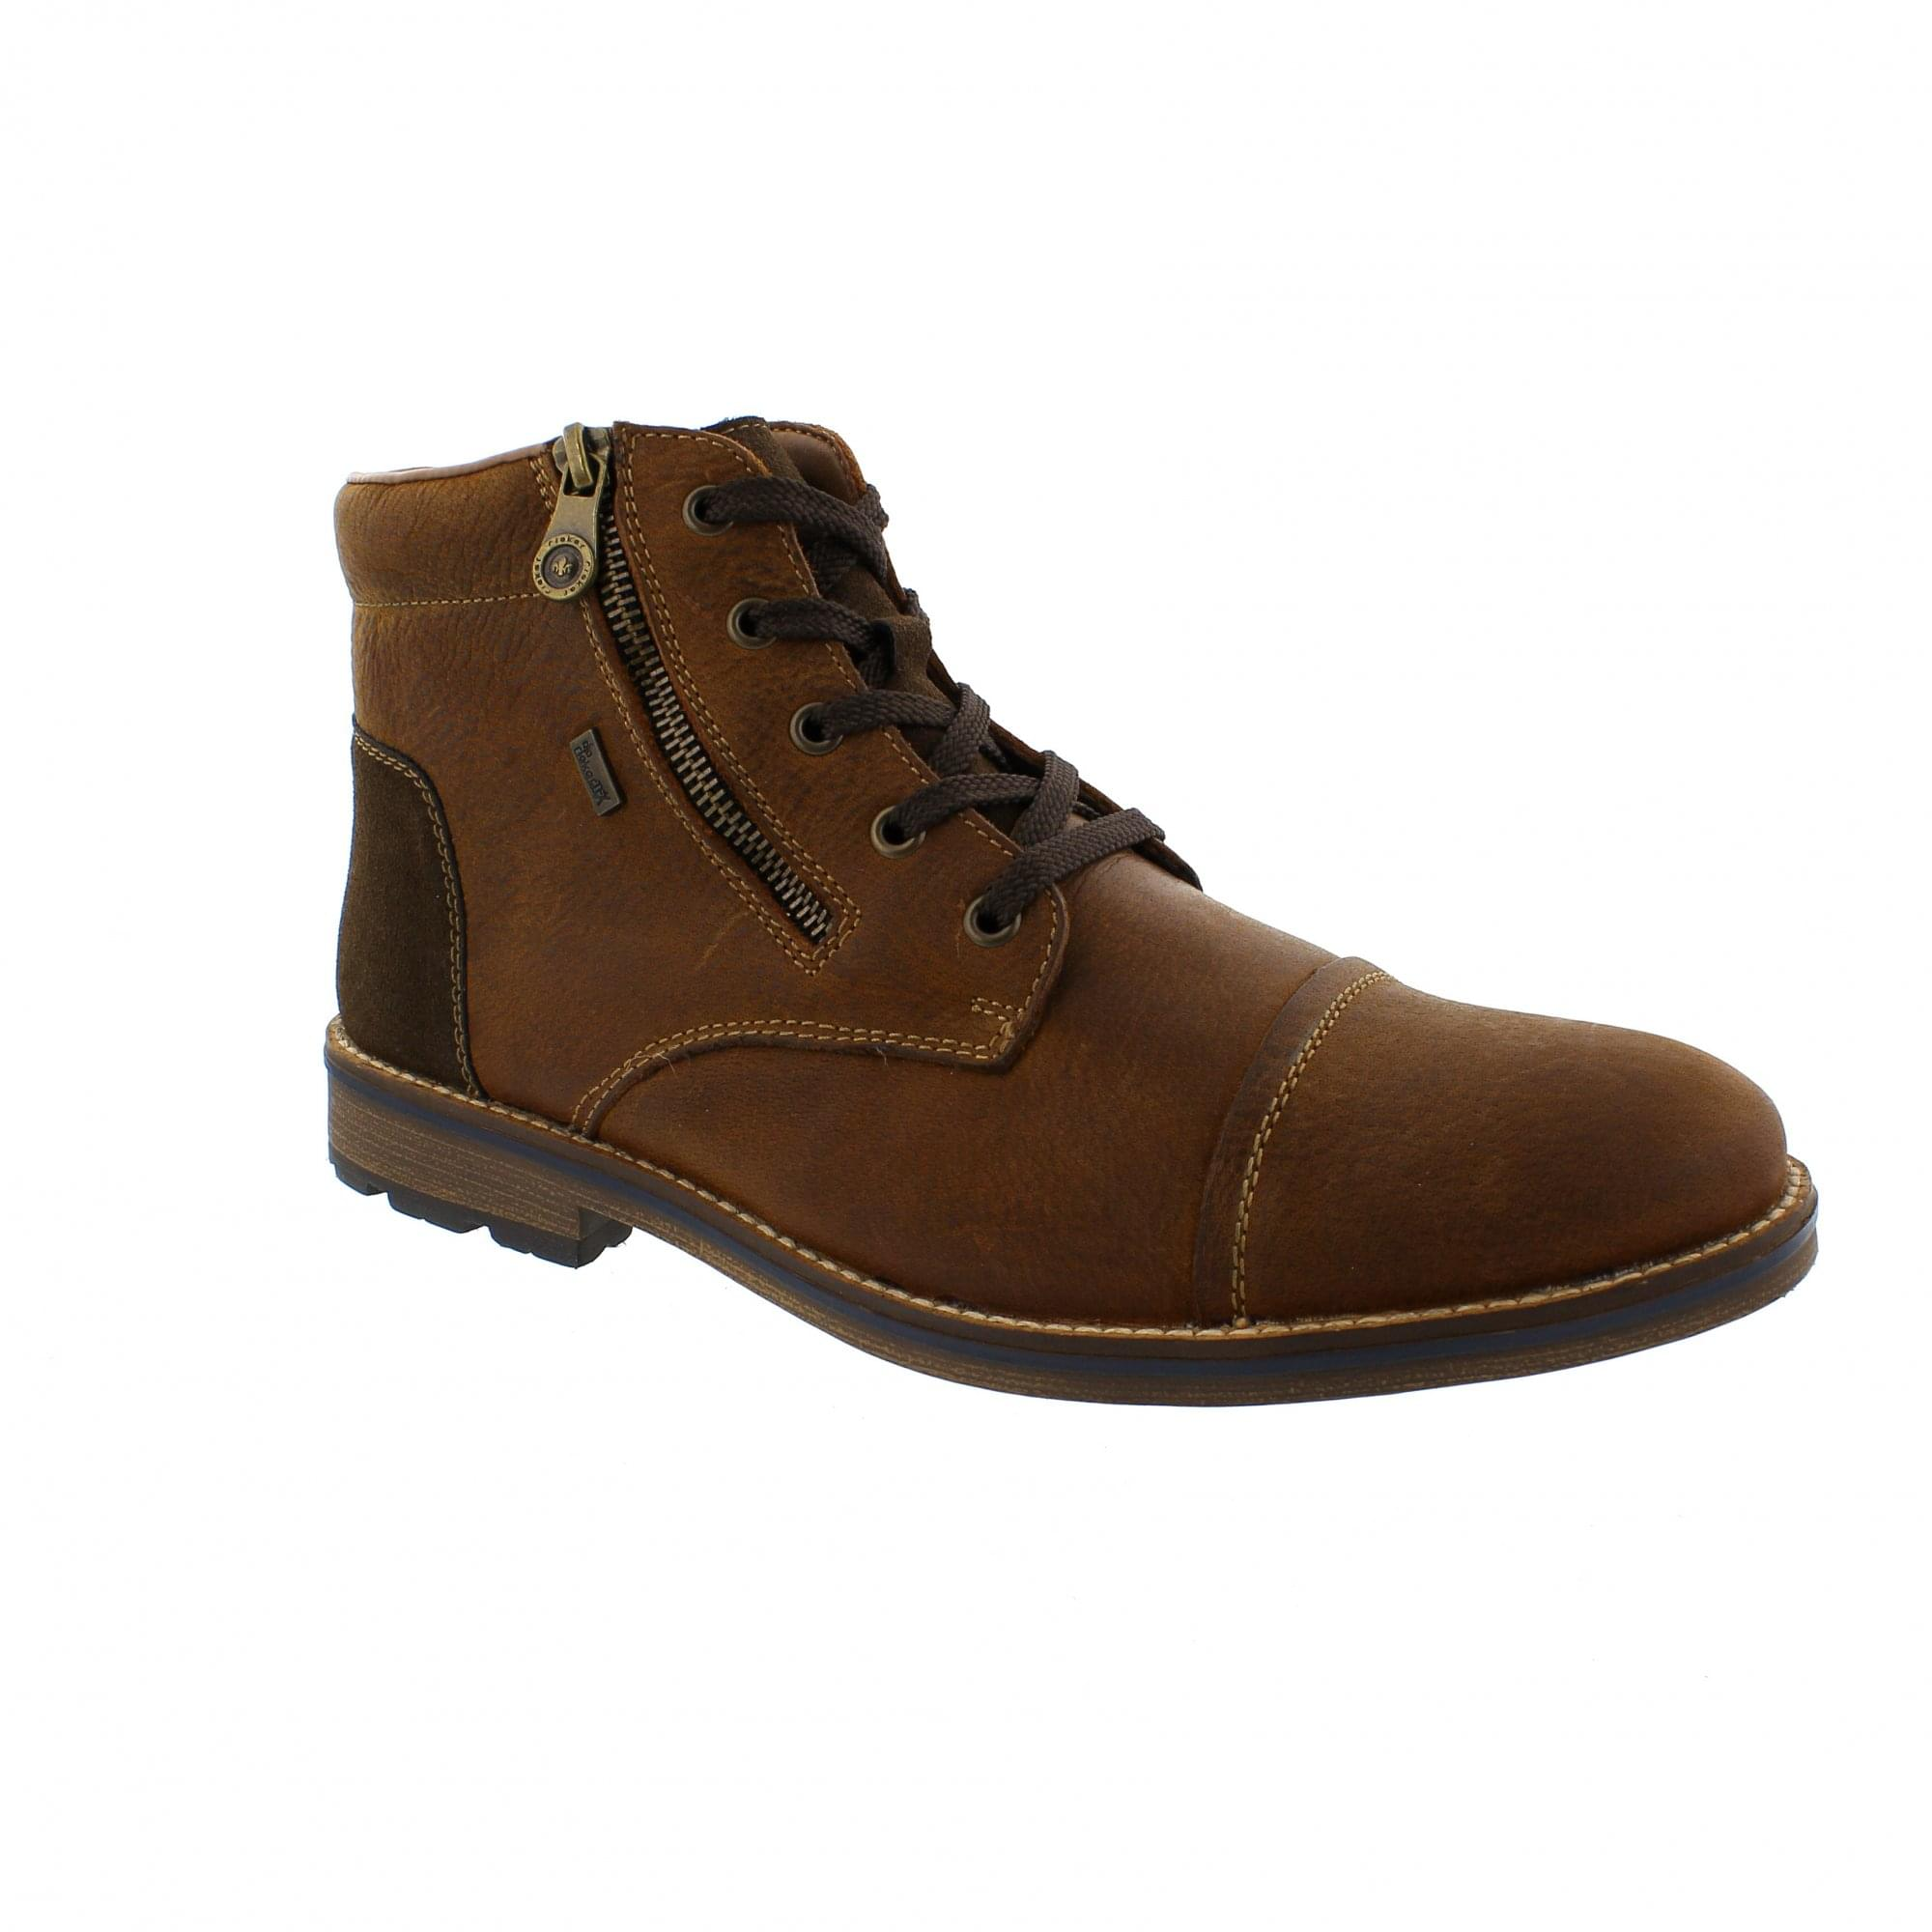 38bf527e56 Rieker F5530-25 Brown Leather Warm Lined Mens Ankle Boots | Rogerson ...